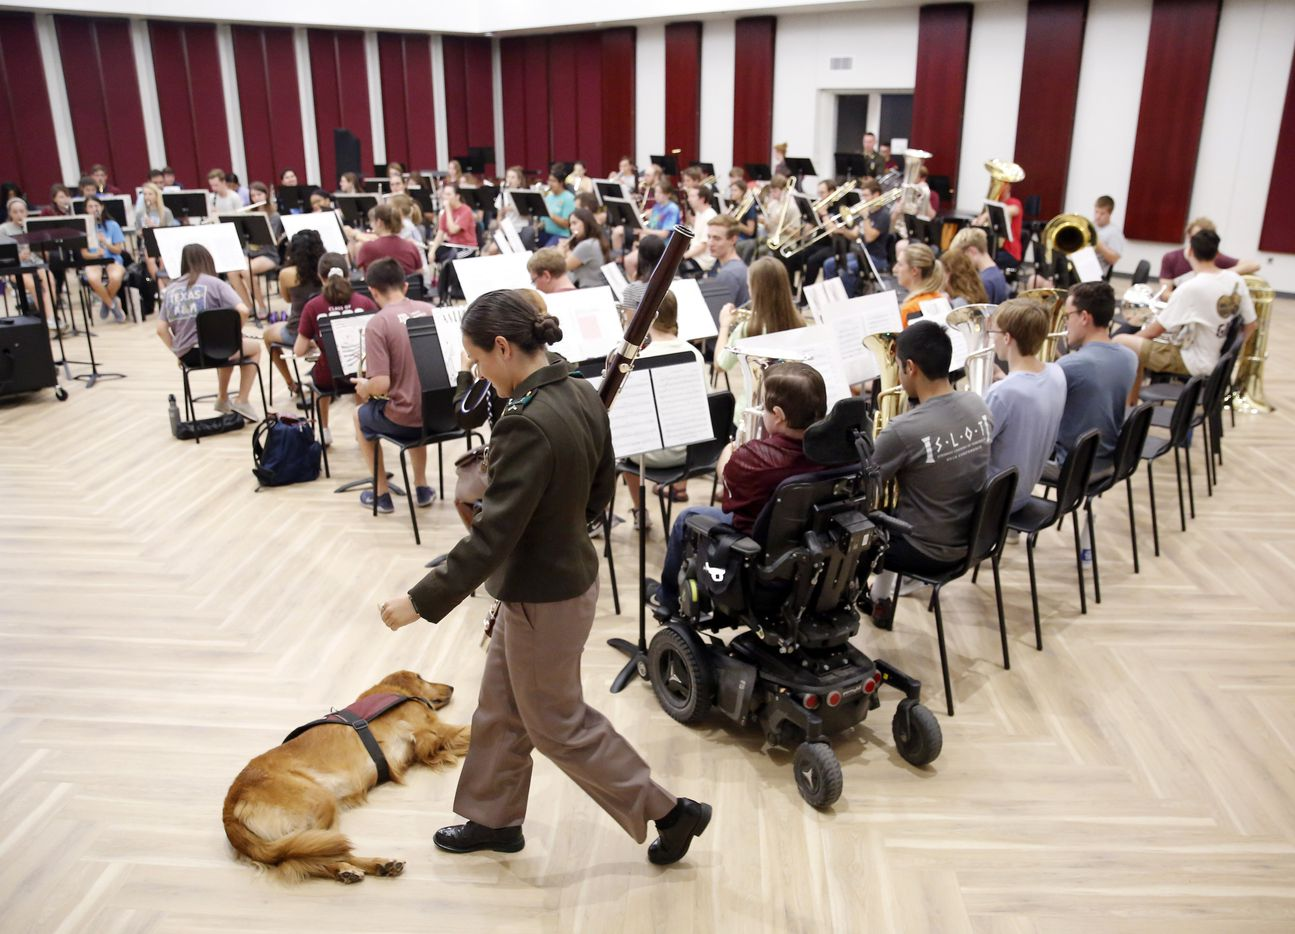 Texas A&M graduate student Kyle Cox (right in wheelchair), who has Duchenne Muscular Dystrophy, warms up his baritone before symphonic band rehearsal at the new Music Activities Center on the Texas A&M campus in College Station, Texas, Wednesday, September 11, 2019. He was joined by his golden retriever service dog, Amber.